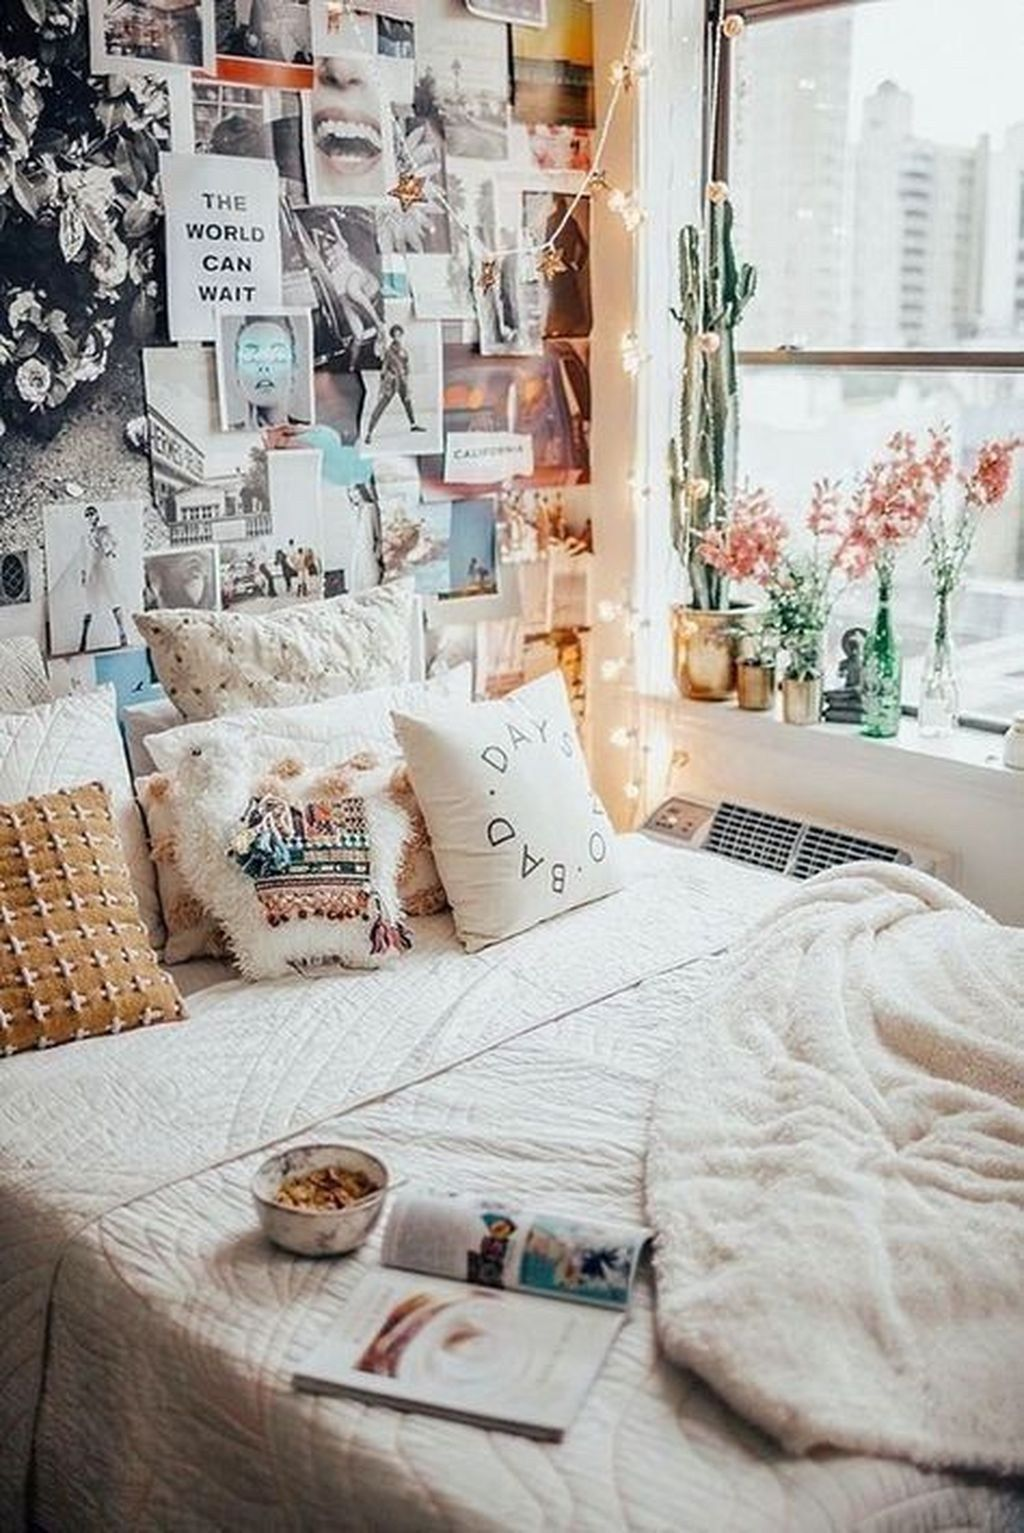 Easy Ways For Diy Dorm Room Decor Ideas 16 Dorm Room Diy Dorm Room Decor Cute Dorm Rooms